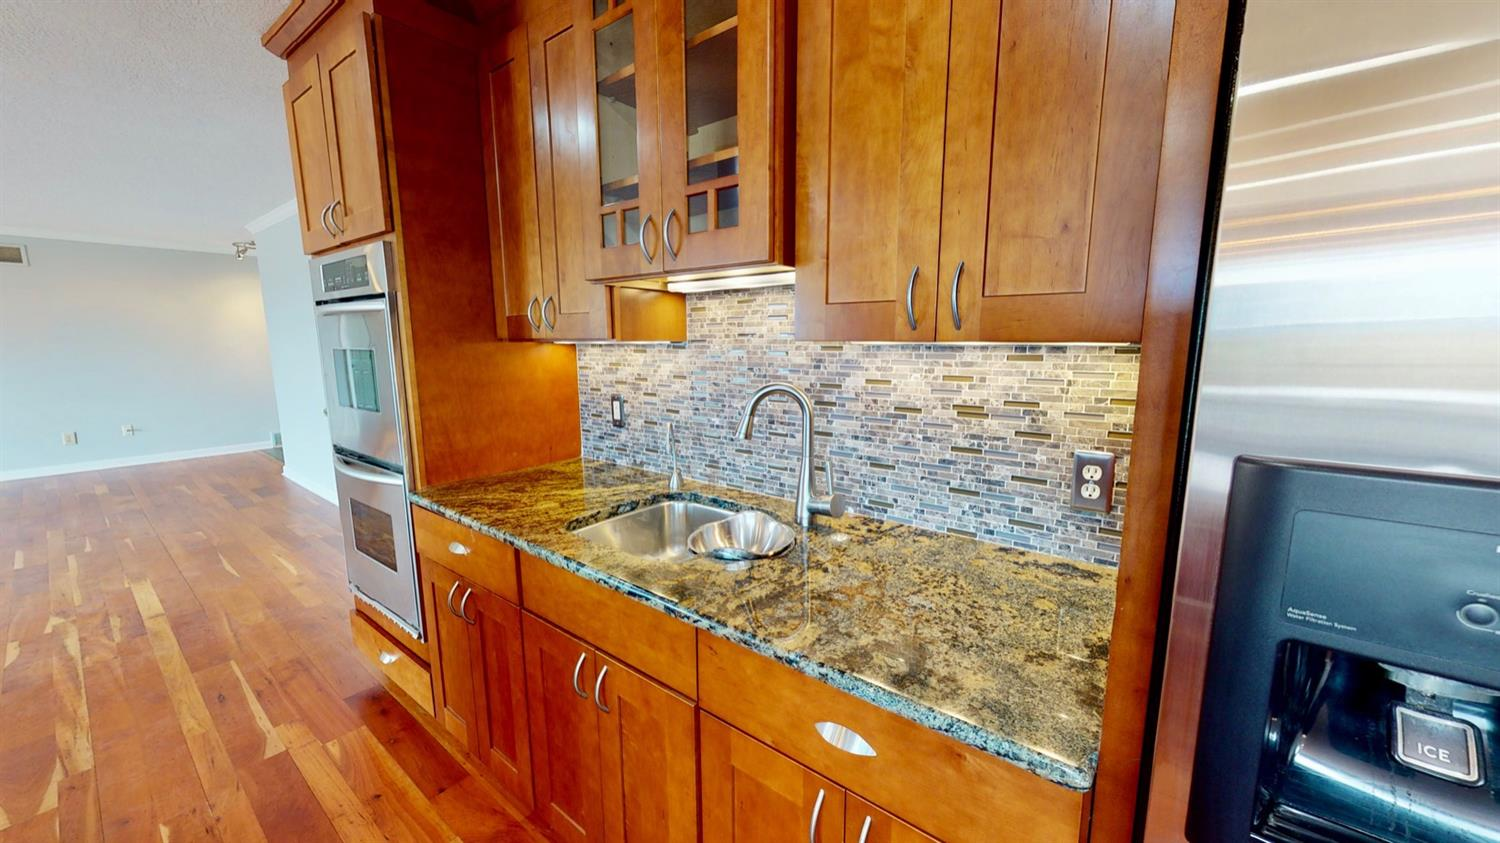 Separate prep sink compete with second garbage disposal and integrated bowls